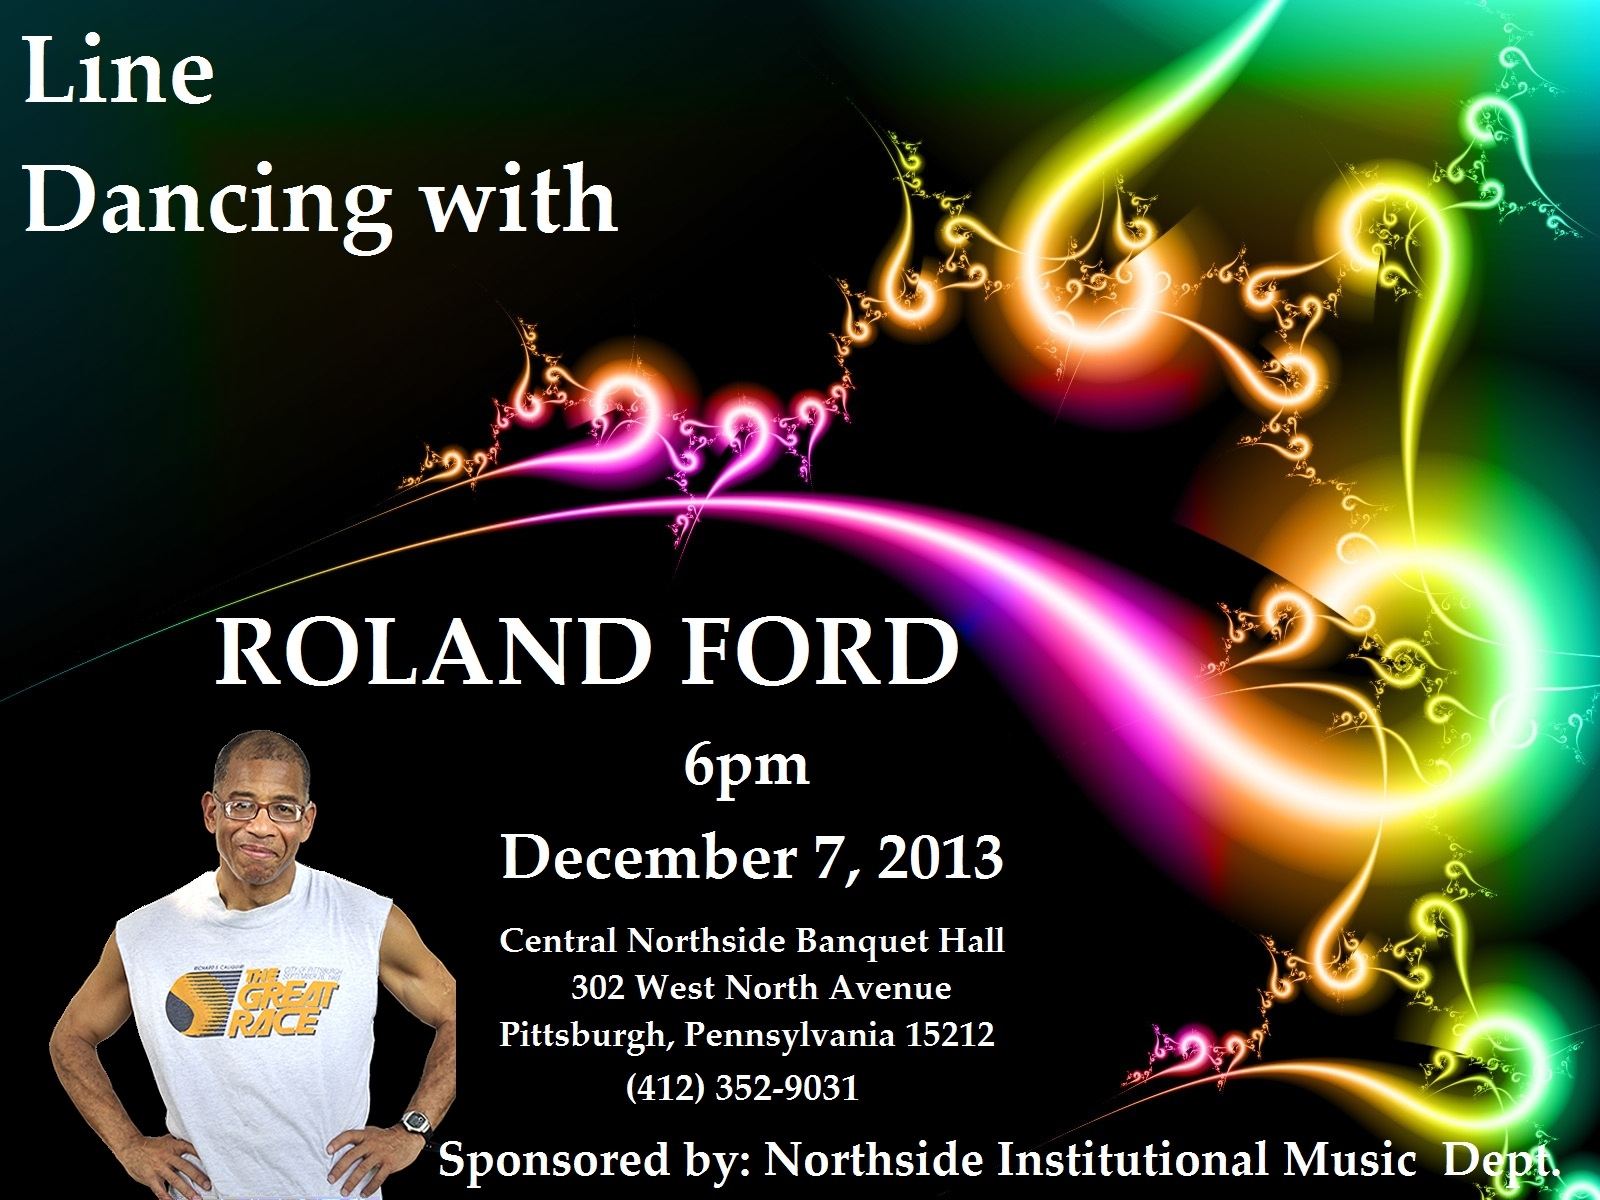 rolandford linedancing